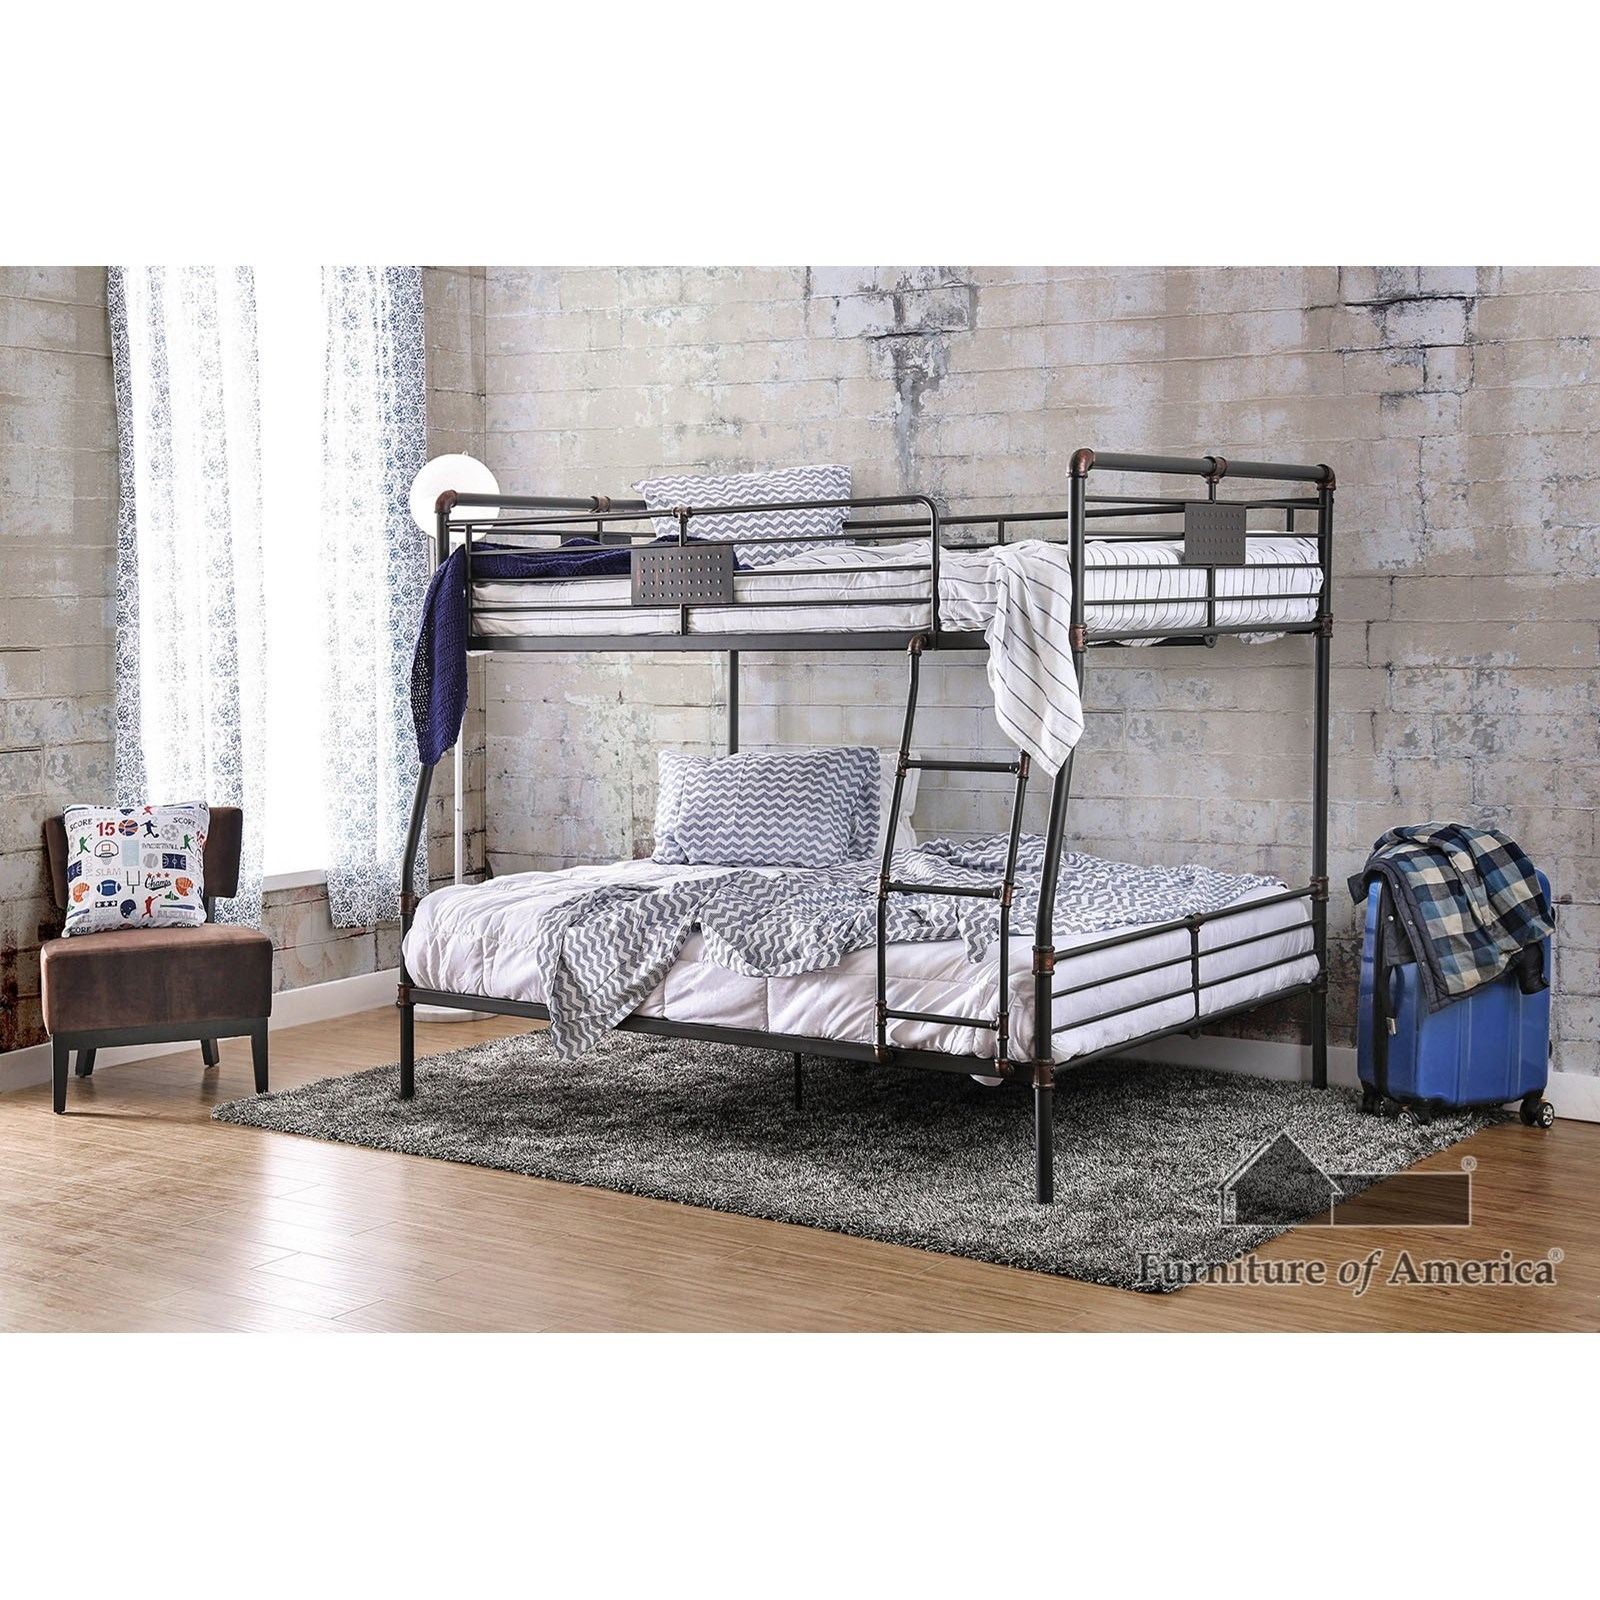 Olga I Full/Queen Bunk Bed by Furniture of America at Nassau Furniture and Mattress